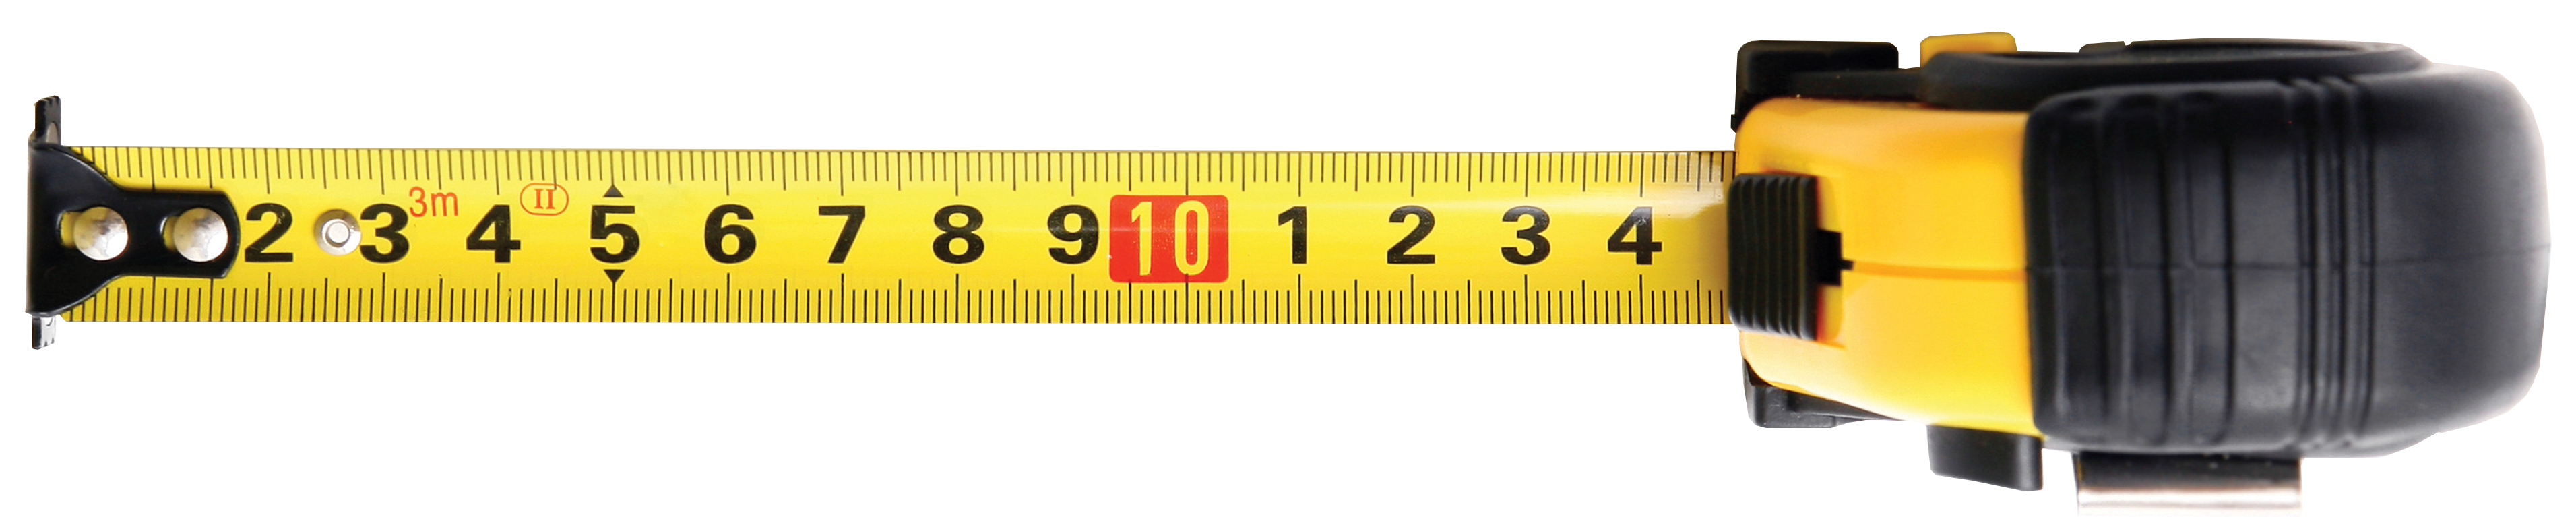 Measure tape png images. Clipart ruler three